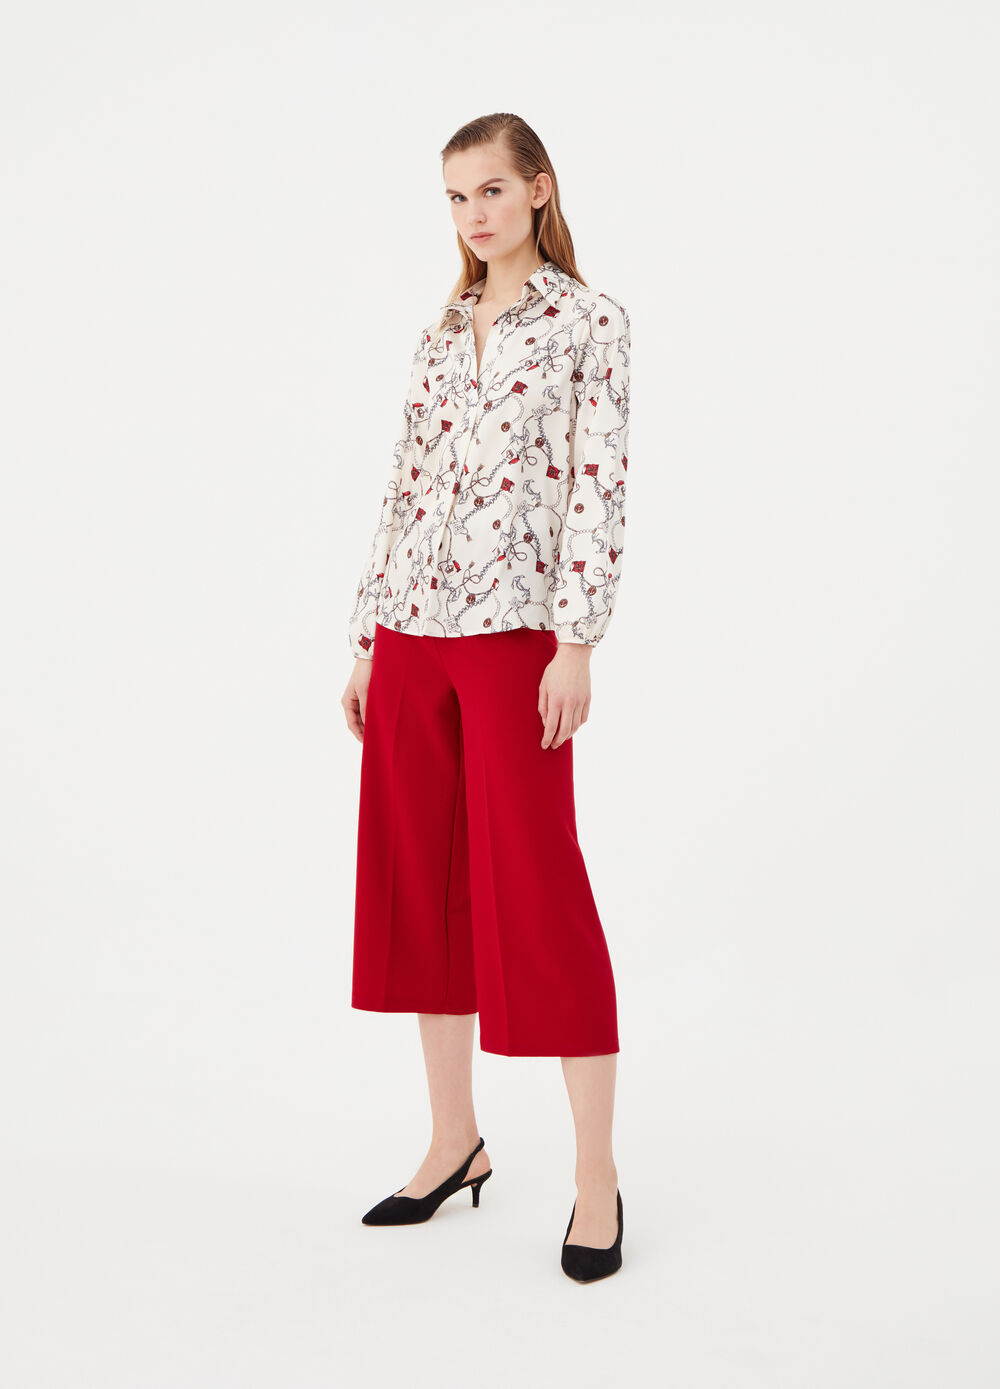 Culotte trousers in comfort fabric